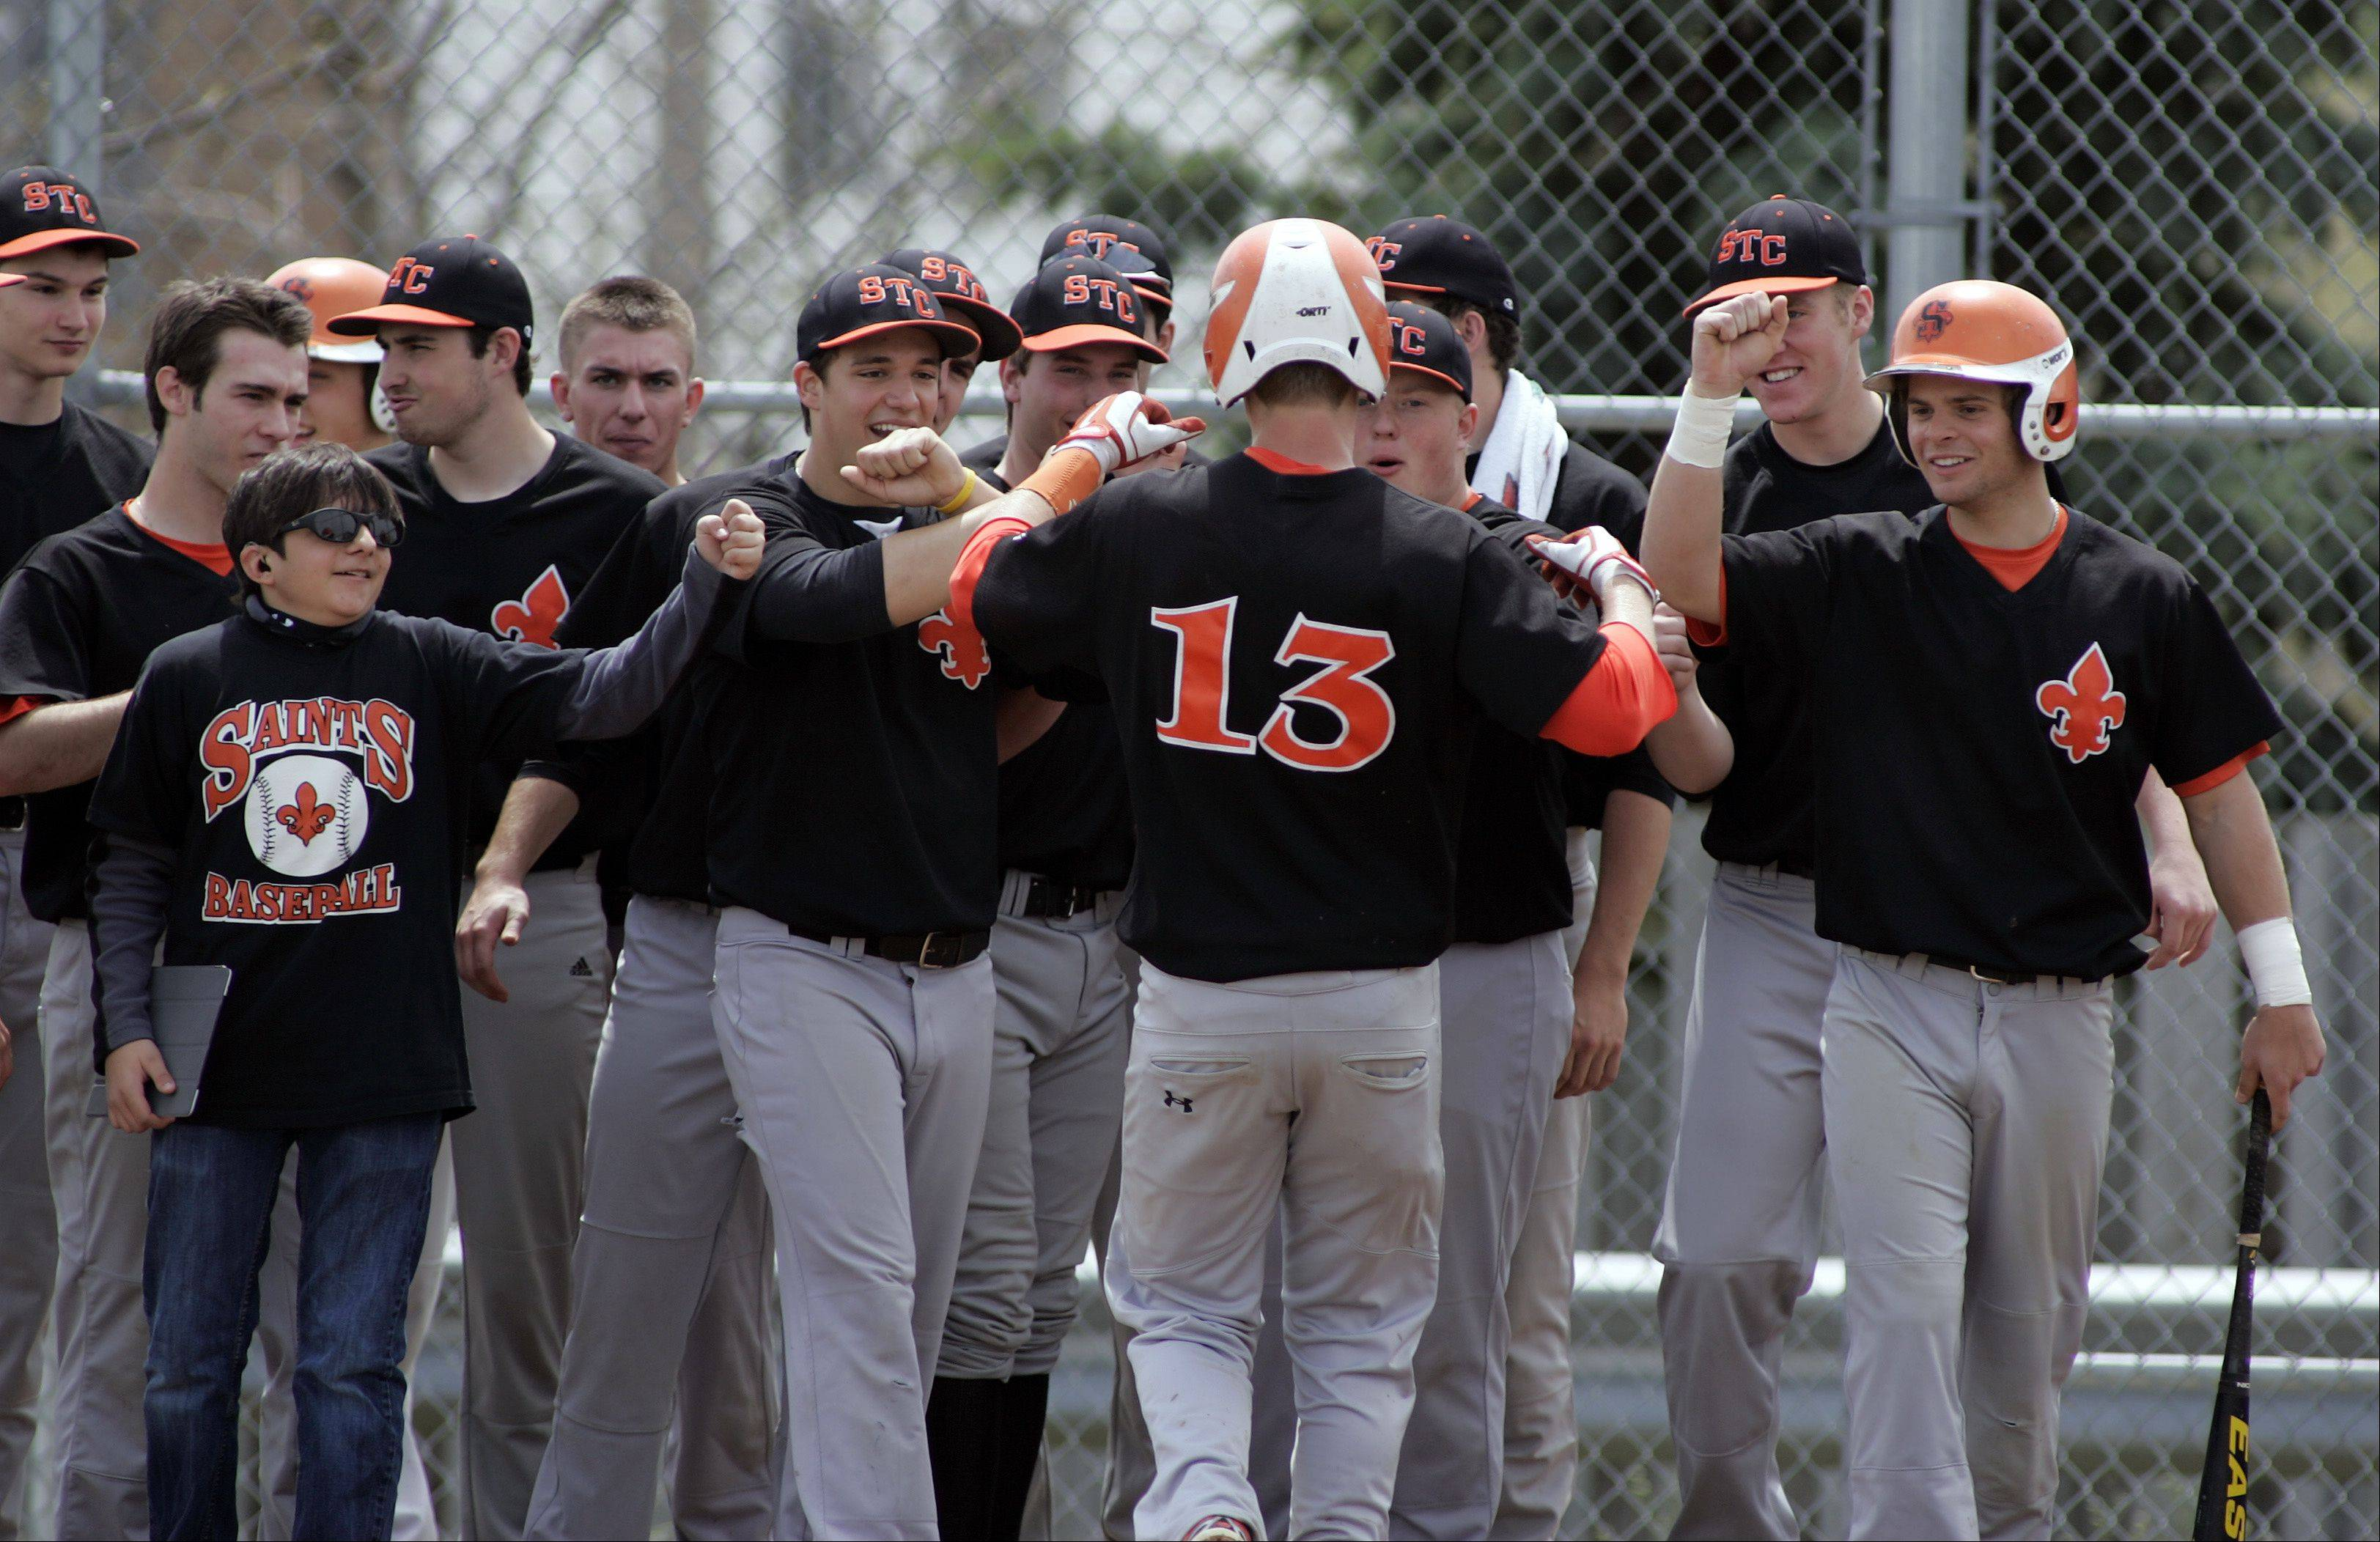 St. Charles East's Isaac Nimick (13) is greeted at the plate after knocking one out of the park during baseball action Saturday at Streamwood.